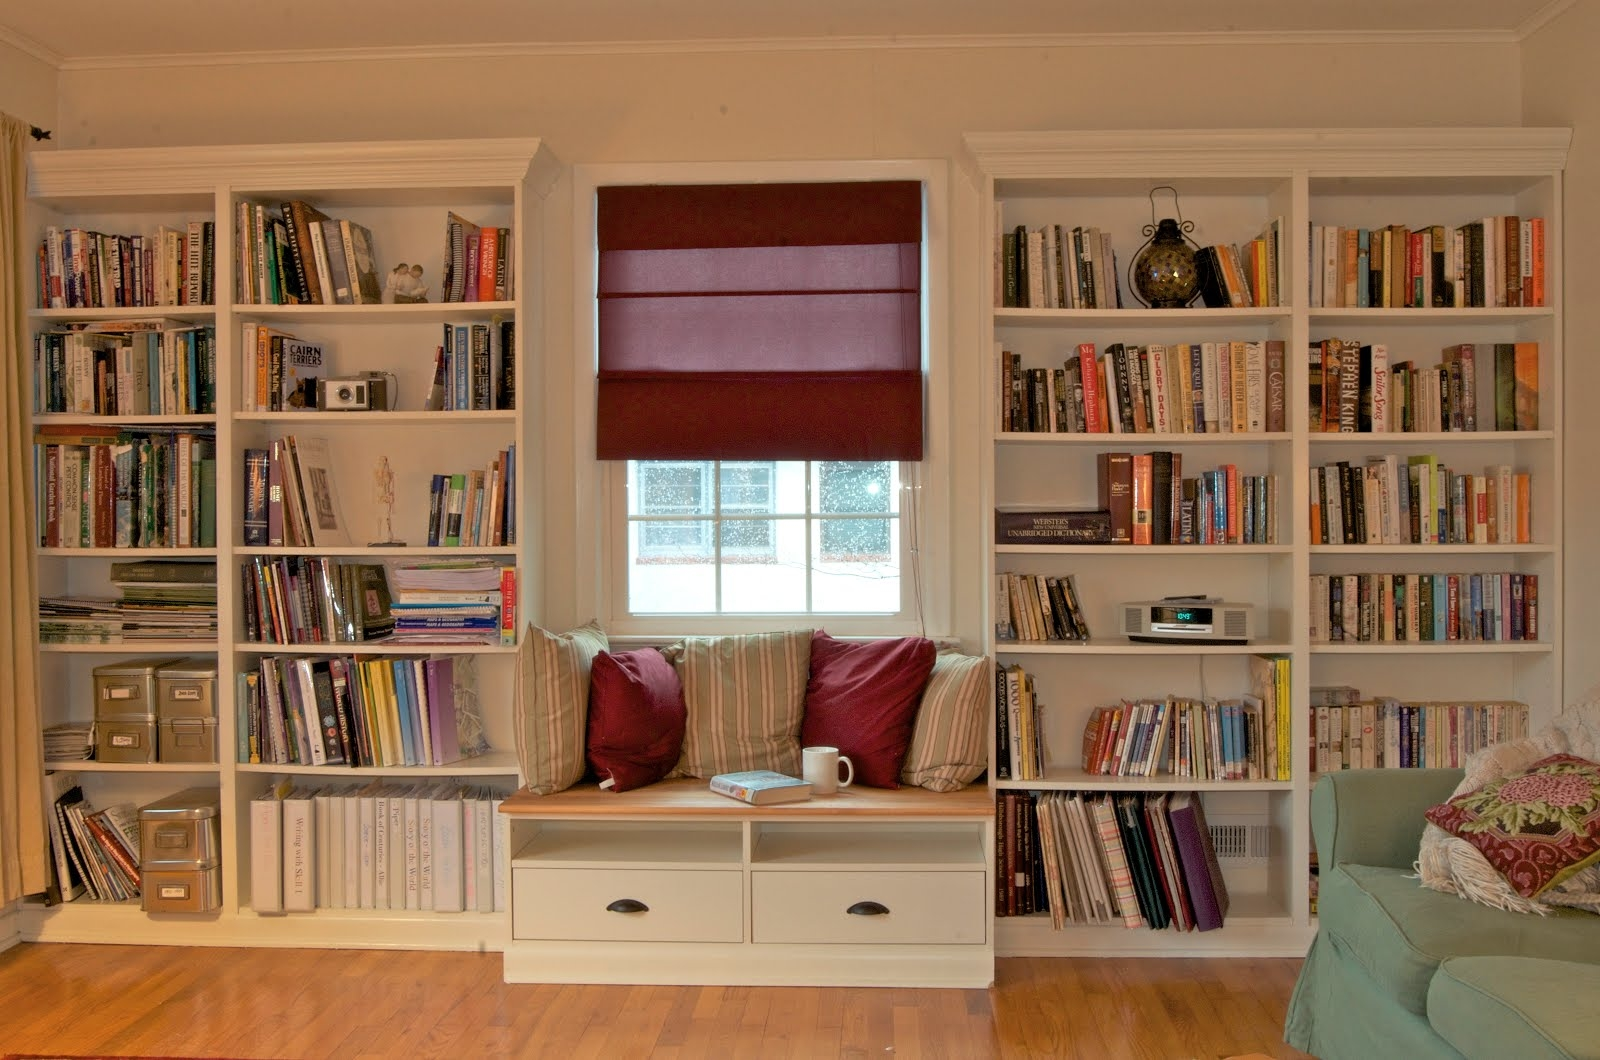 Ikea Hackers Built In Bookshelves With Window Seat For Under 350 With Regard To Build Bookcase Wall (View 12 of 15)